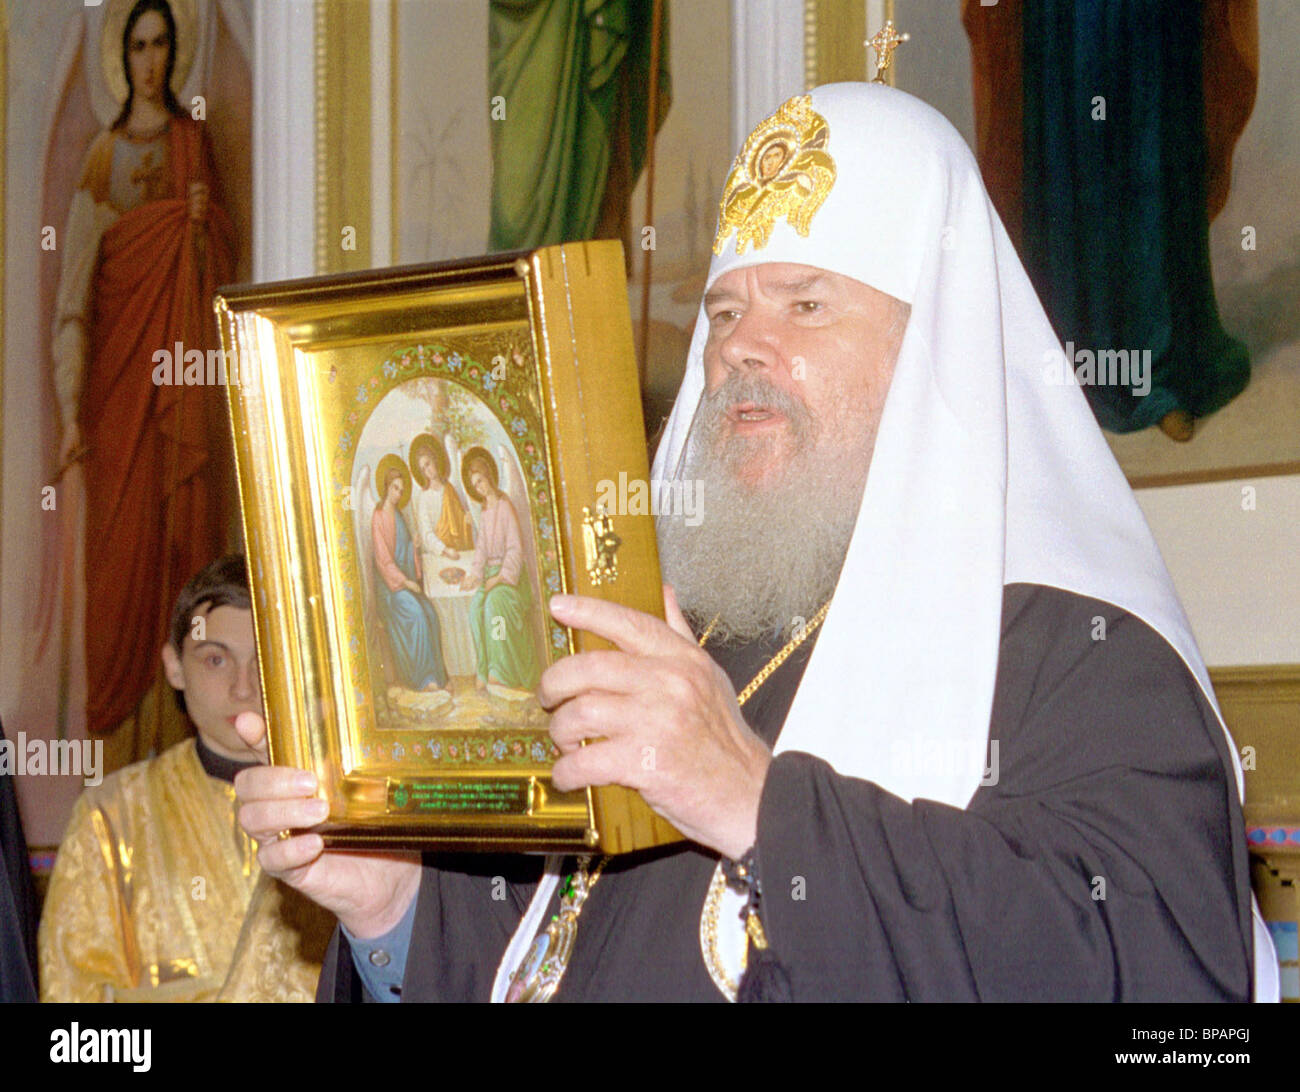 Patriarch Alexy II of Moscow and All Russia presents an icon to Saint Trinity Cathedral in Alapayevsk - Stock Image